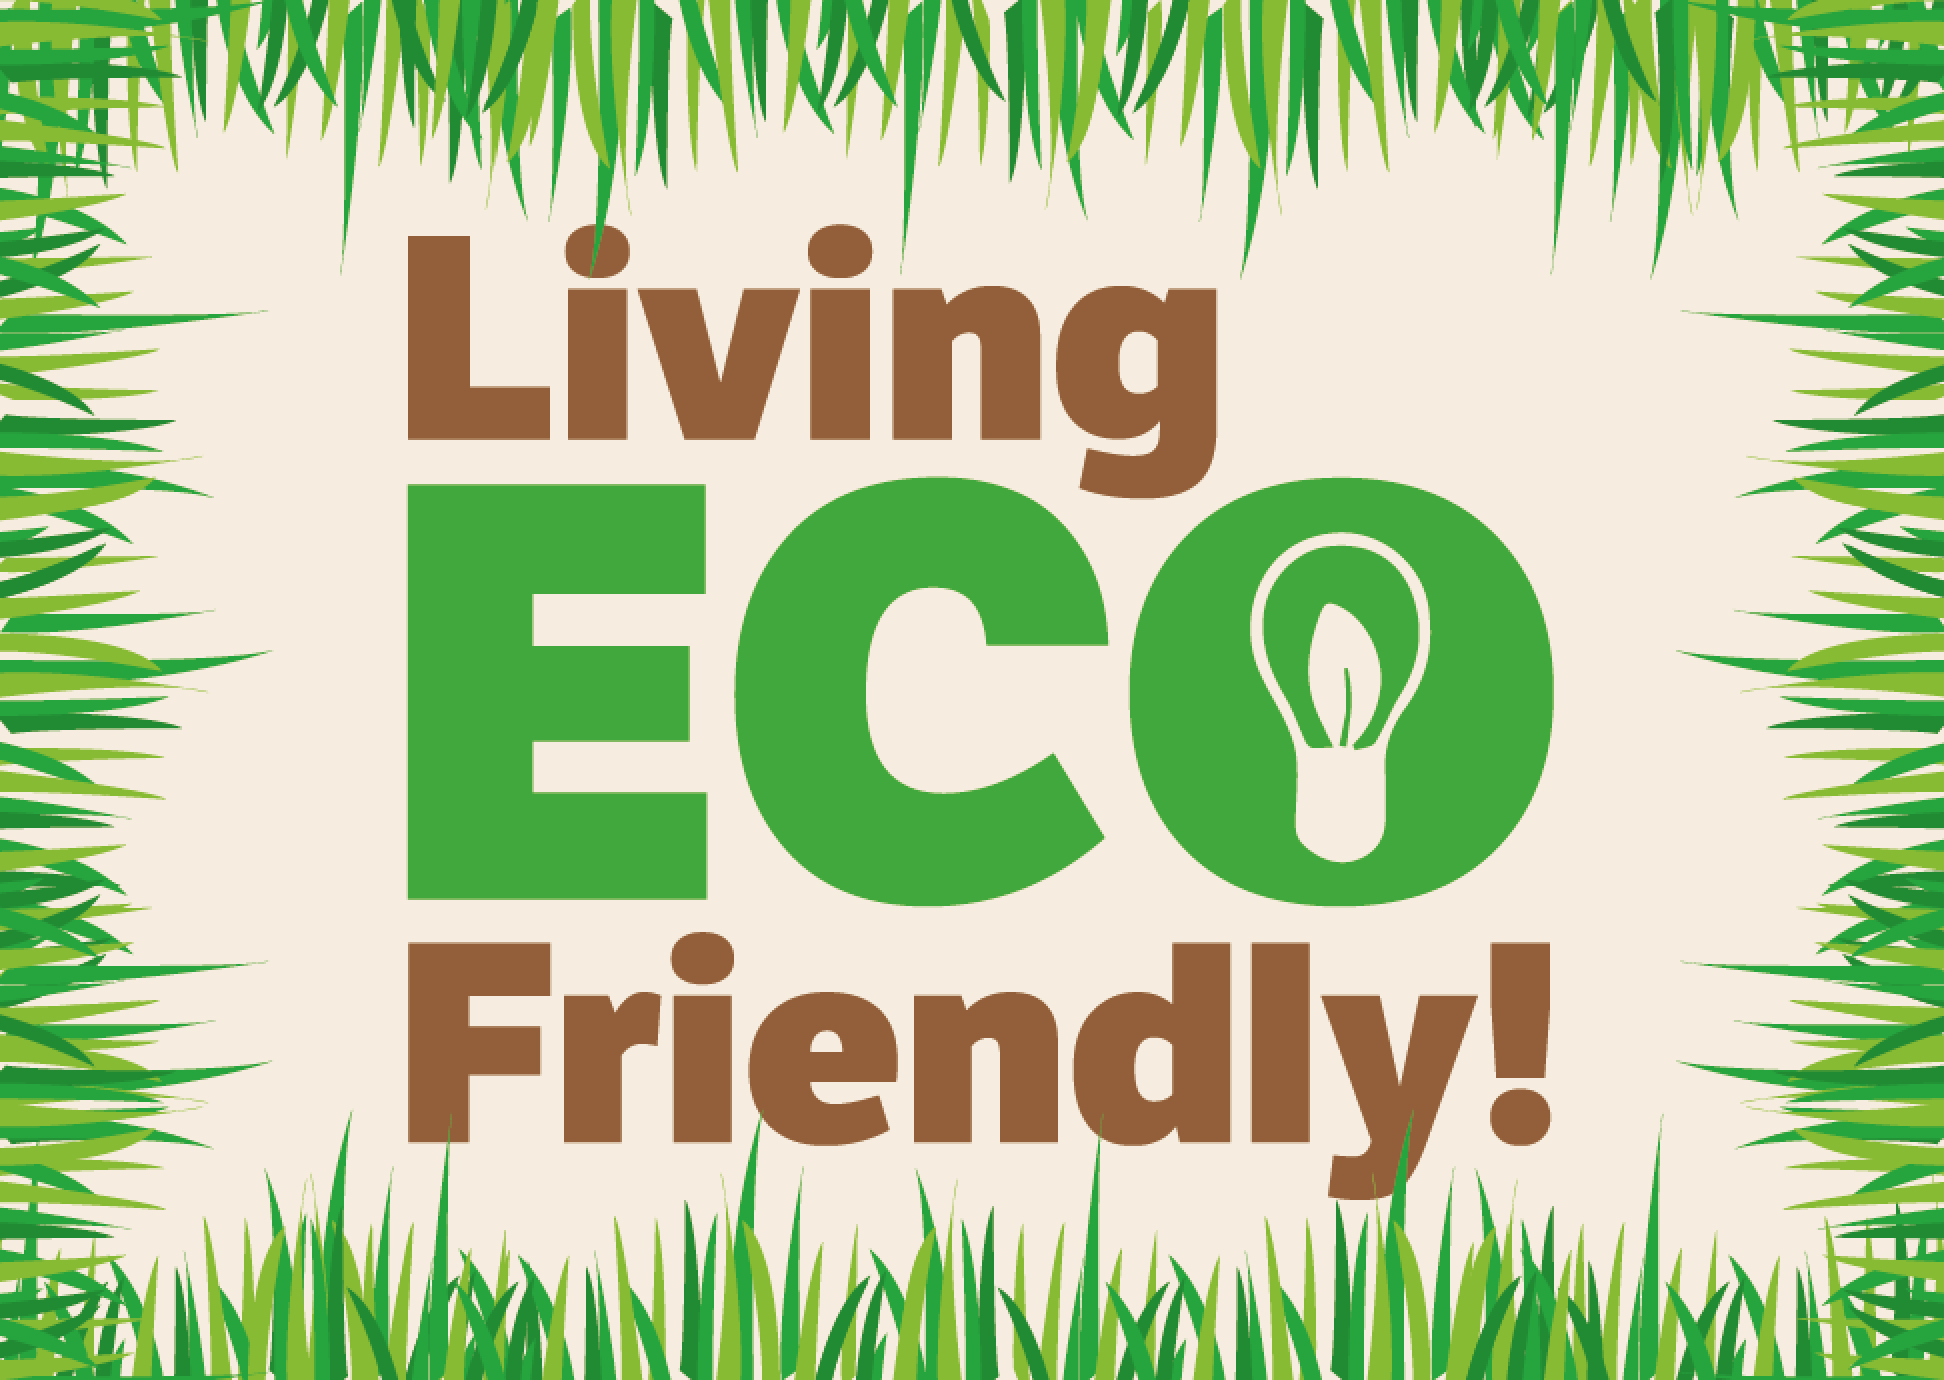 Living ECO Friendly!